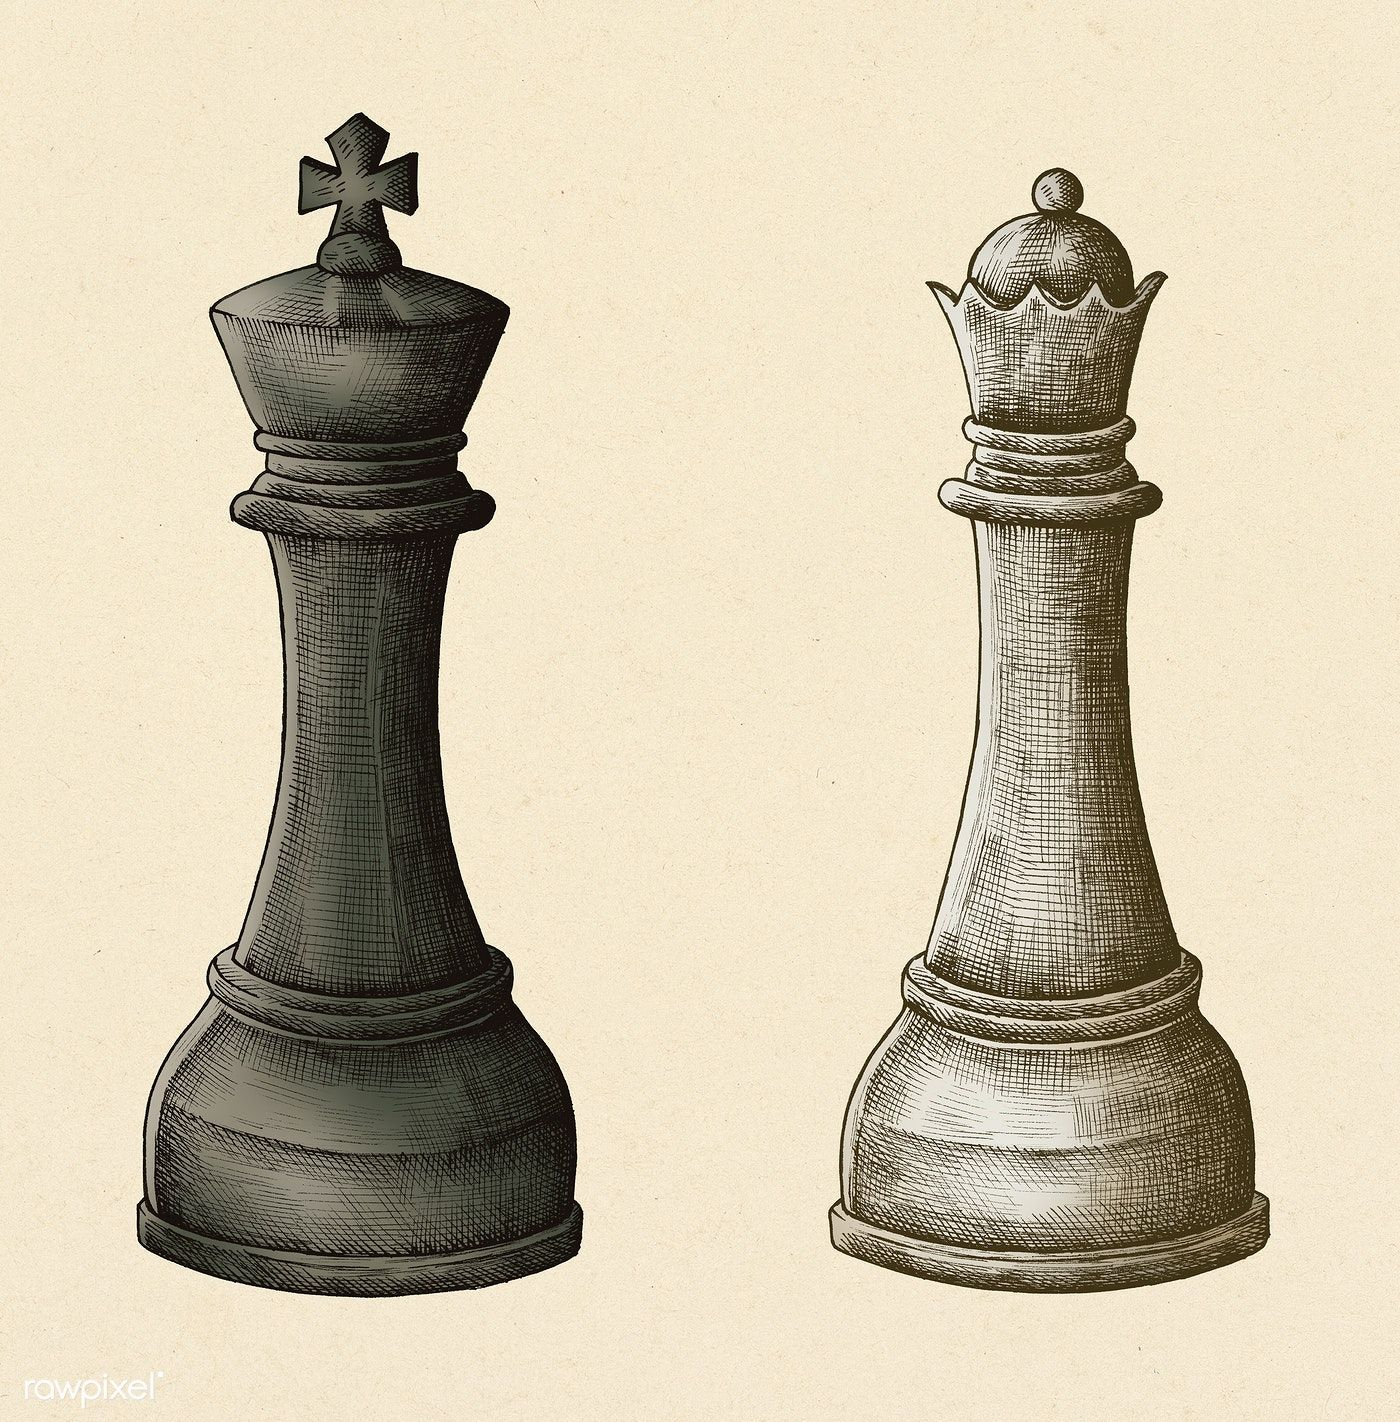 Hand Drawn Chess King And Queen Illustration Free Image By Rawpixel Com Noon Chess King Chess King And Queen How To Draw Hands